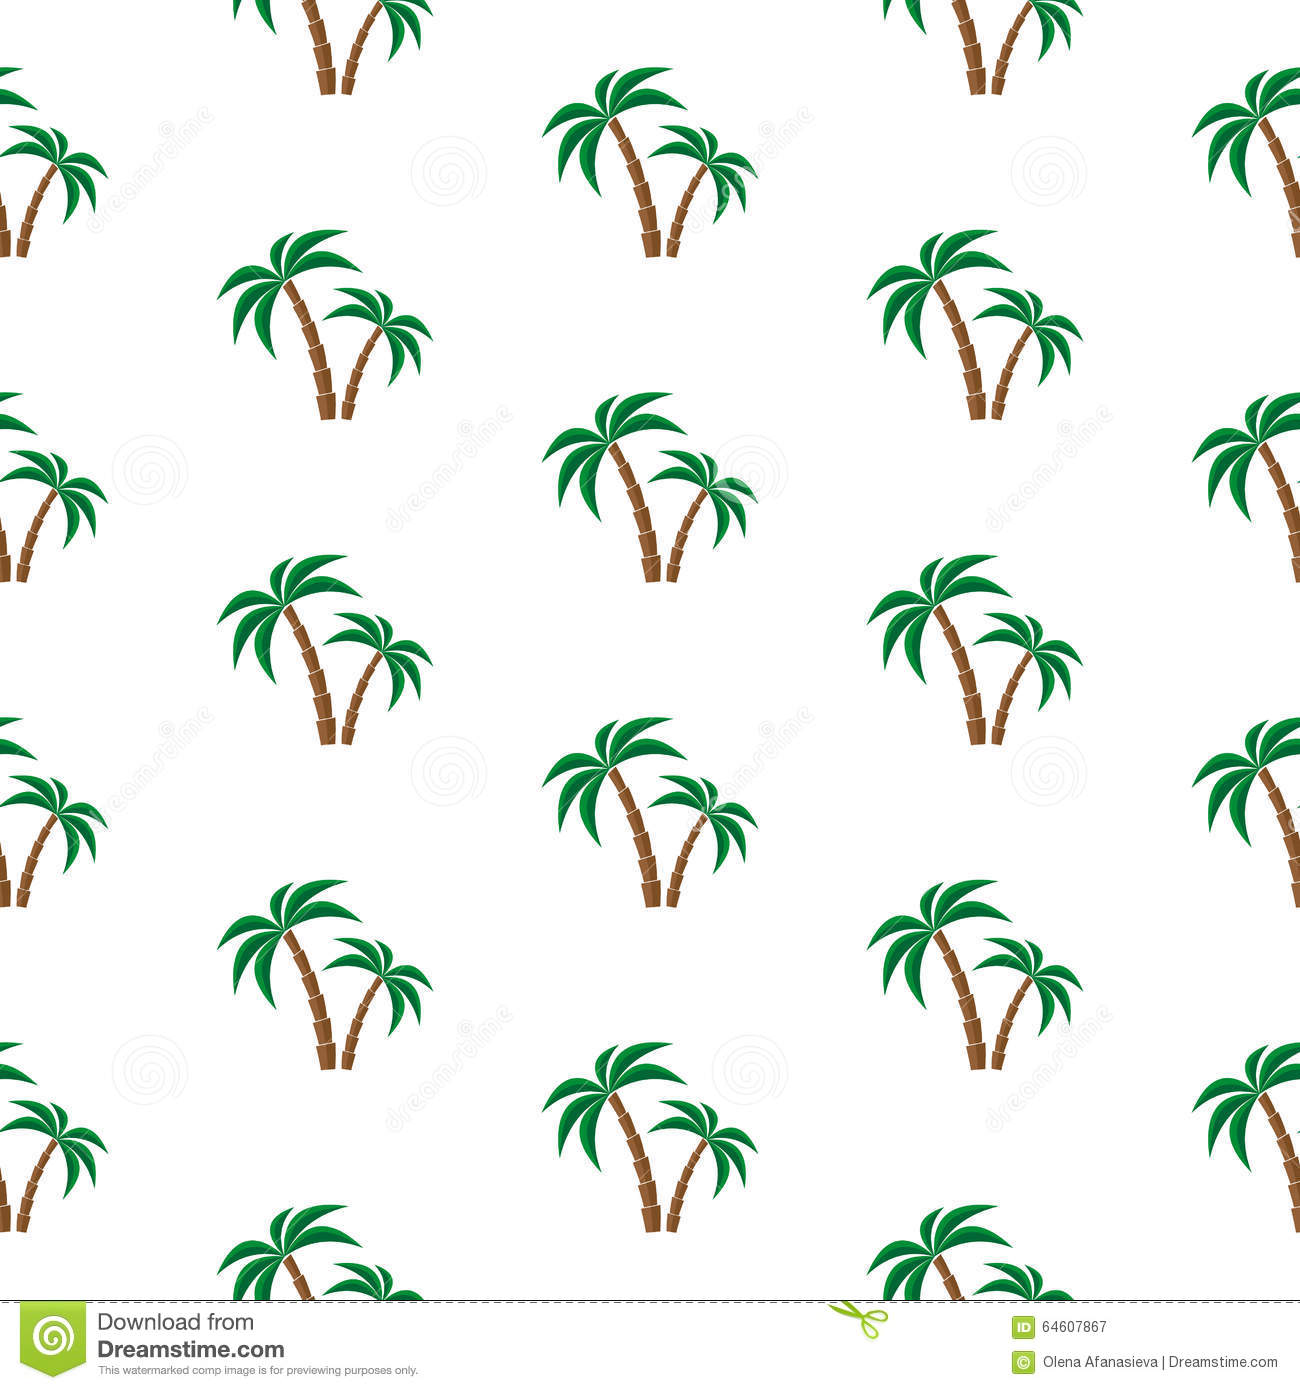 Palm trees. Seamless pattern. Vector illustration on a white ...